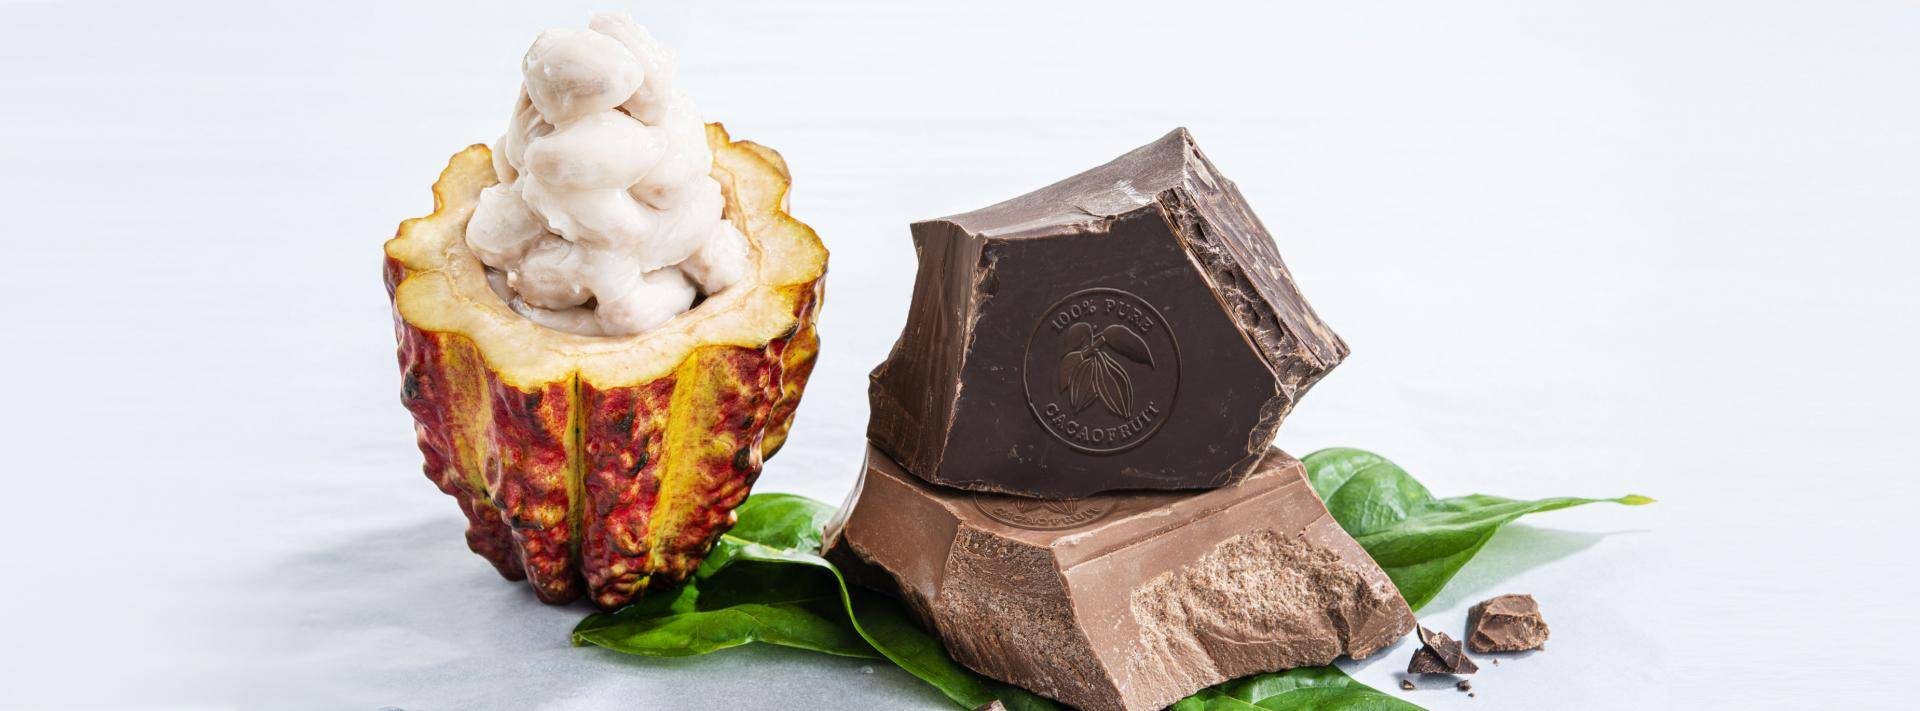 WholeFruit Chocolate from Barry Callebaut